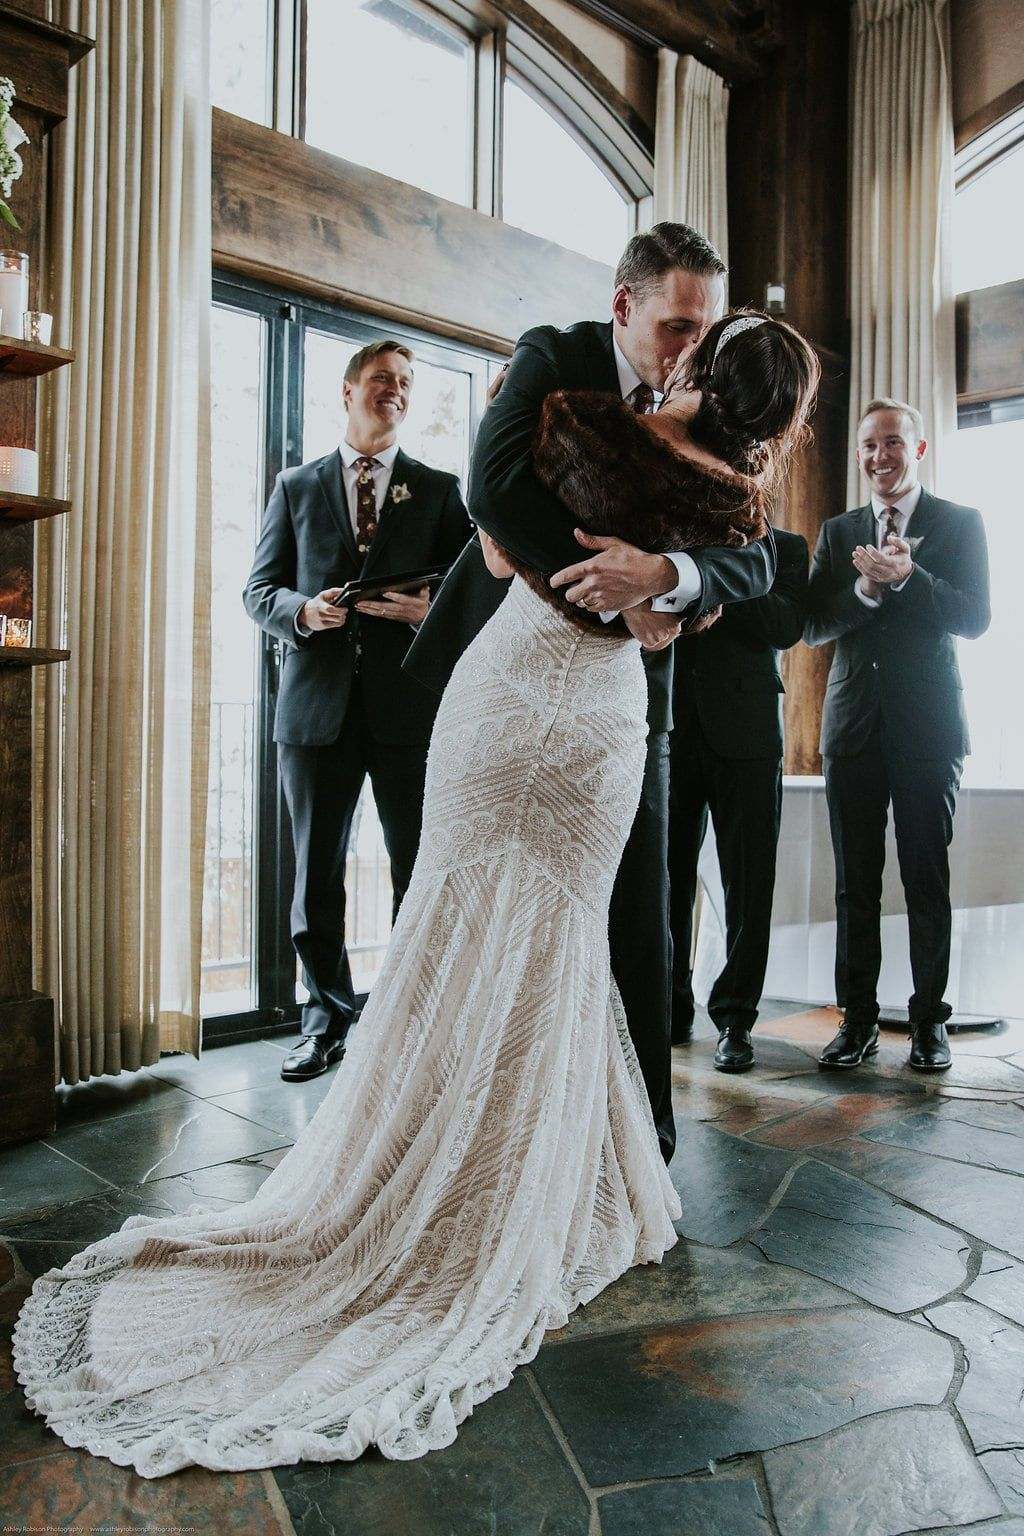 Winter Wedding Wedding Photography Couples Photography Wedding Ceremony Photo Jocelyn Noel Wedding Ceremony Photos Wedding Dresses Lace Winter Wedding